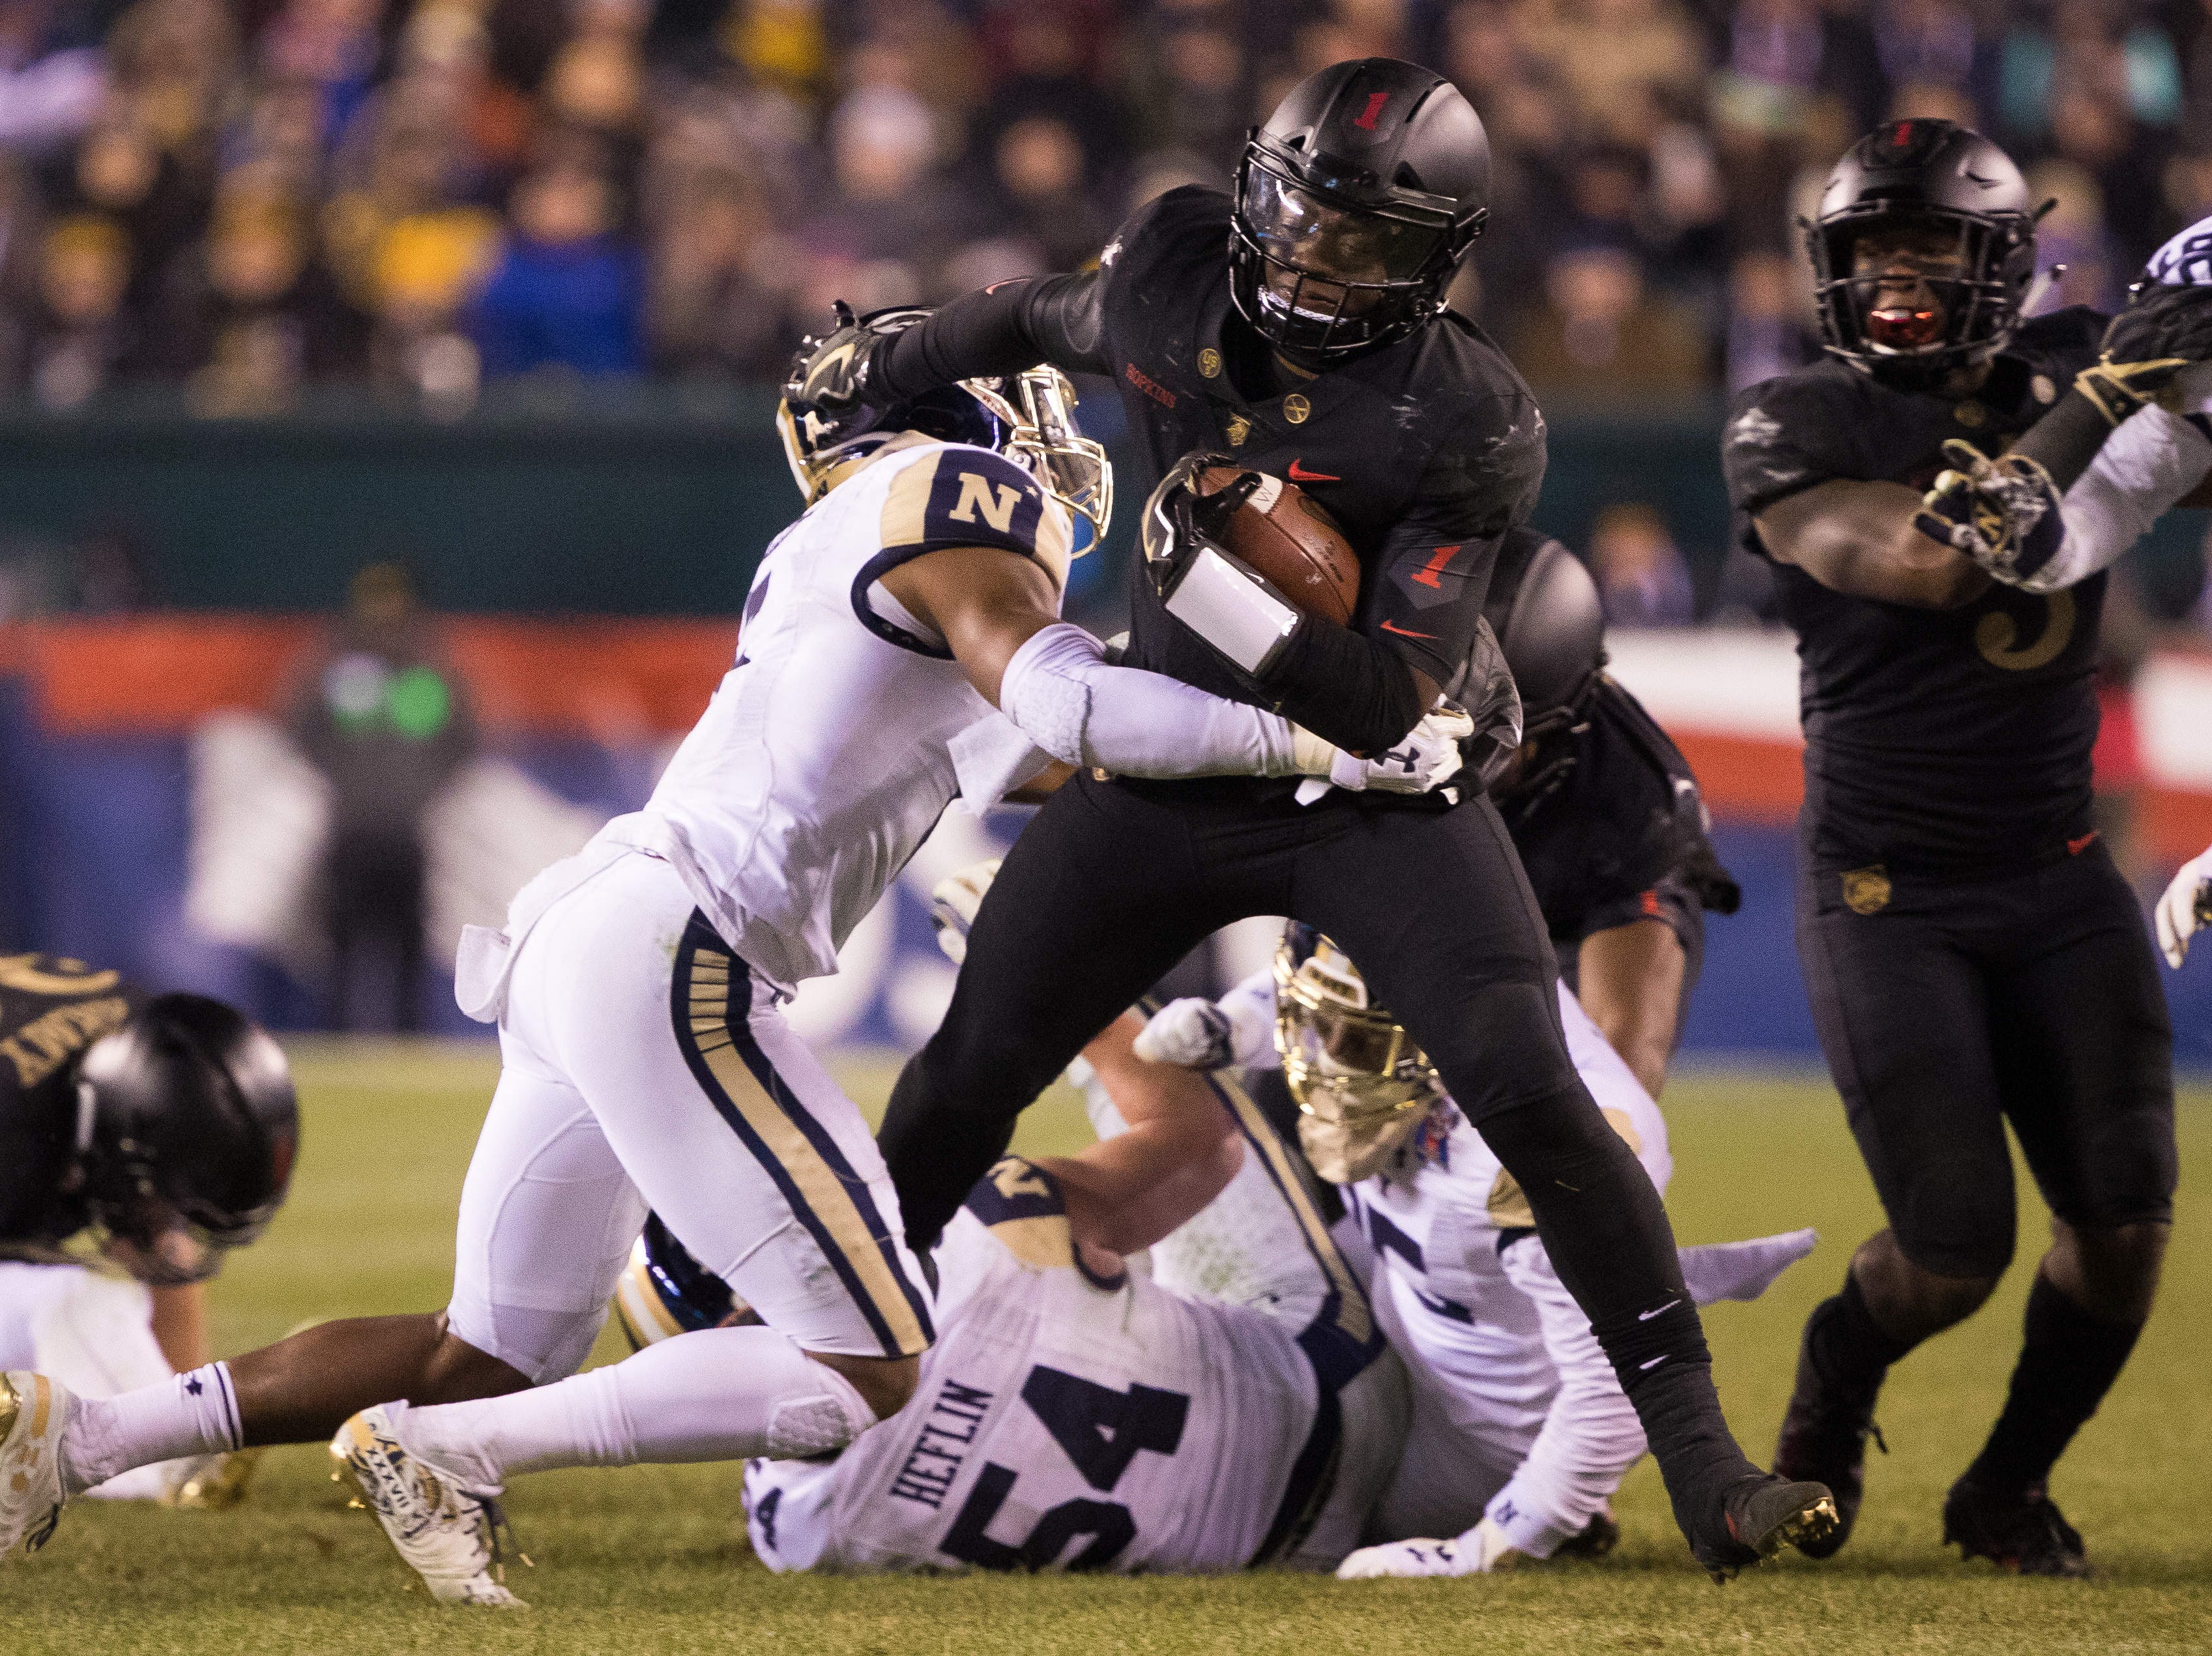 Army Black Knights quarterback Kelvin Hopkins Jr. (8) runs for a first down past the tackle attempt of Navy Midshipmen defensive back Michael McMorris (5) at Lincoln Financial Field.